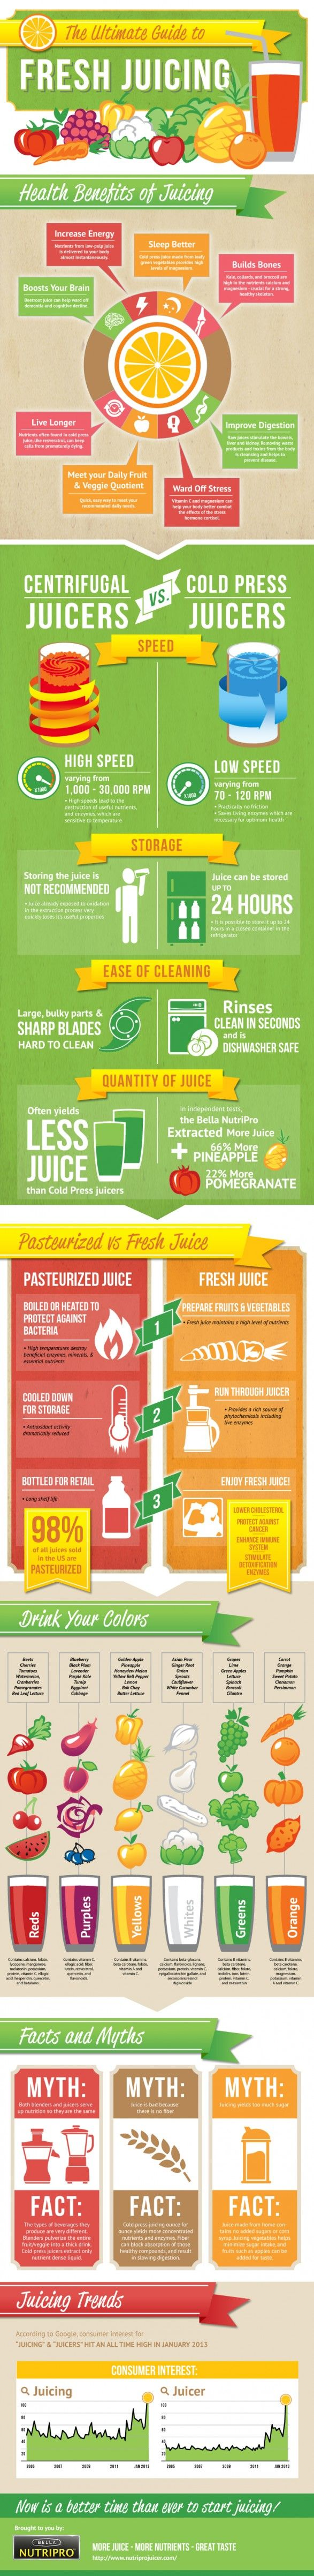 The Ultimate Guide to Juicing CURATED BY MARIA RUSSO  Research has found that drinking fresh pressed juice has incredible health benefits such as improving sleep, increasing energy, decreasing stress and prolonging life expectancy. The following infographic, breaks down these benefits along with the best fruits and vegetables to juice; the differences between centrifugal juicers and cold press juicers; pasteurized juice and fresh juice; and much more.